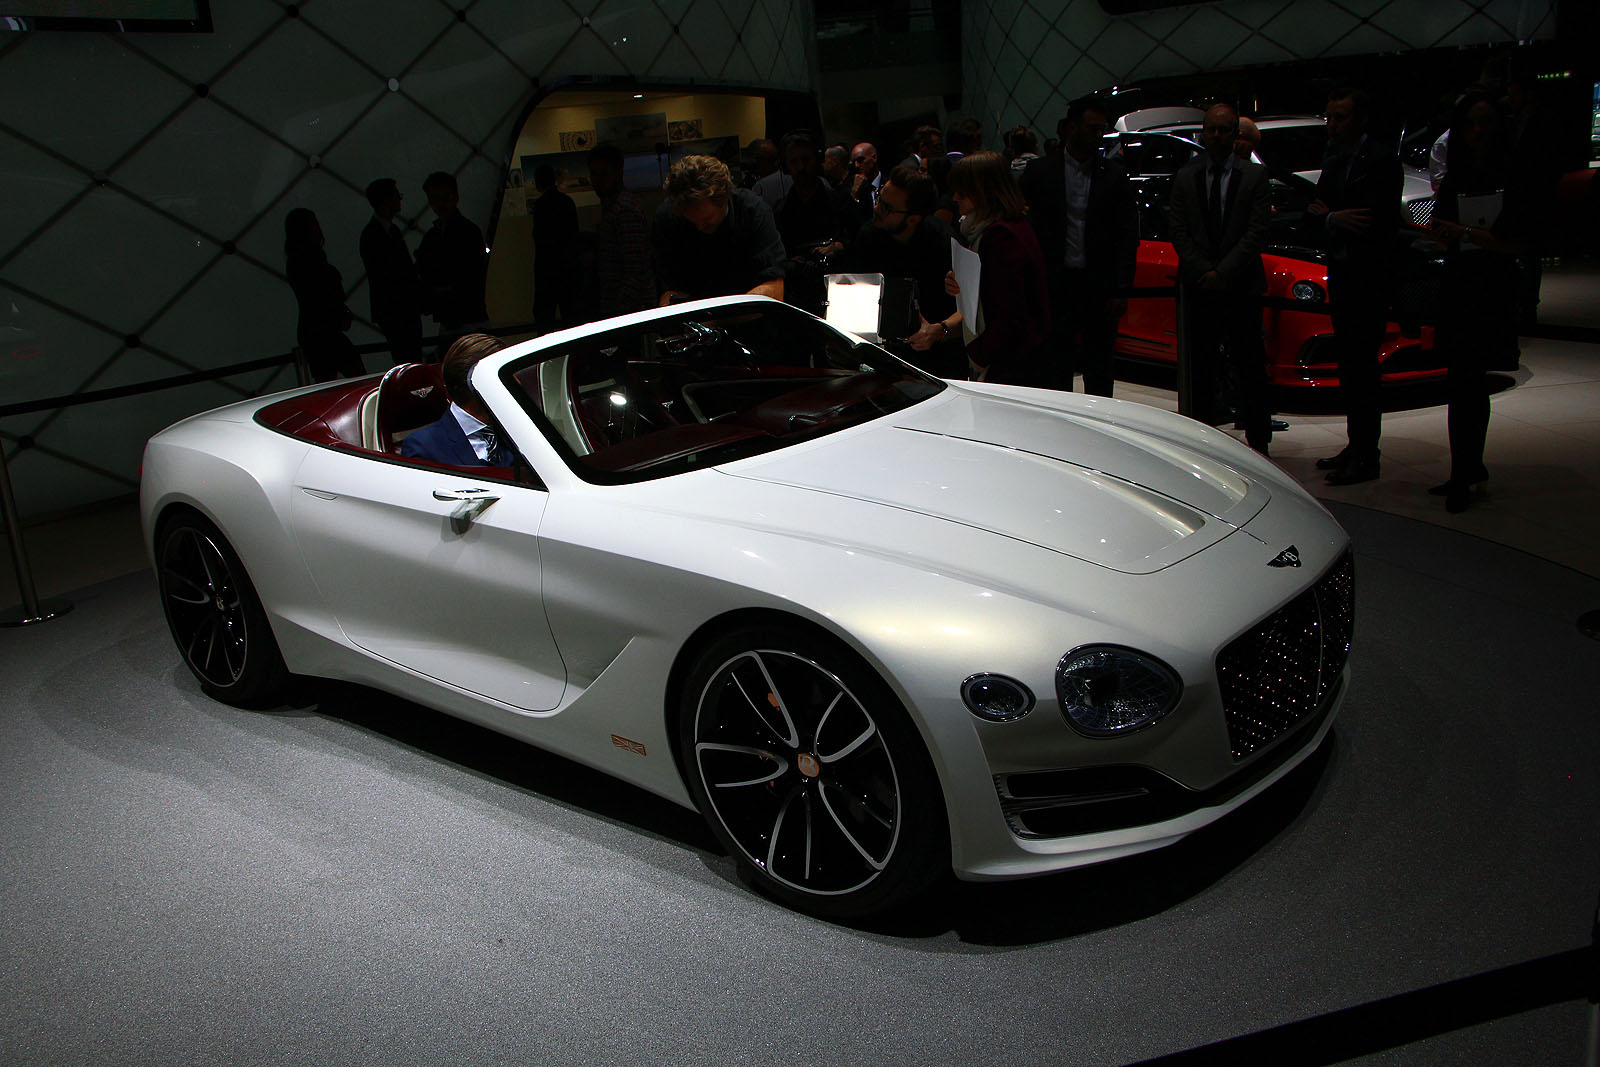 Electric Bentley Convertible Concept Proves EVs Don't Need to Make Sacrifices » AutoGuide.com News